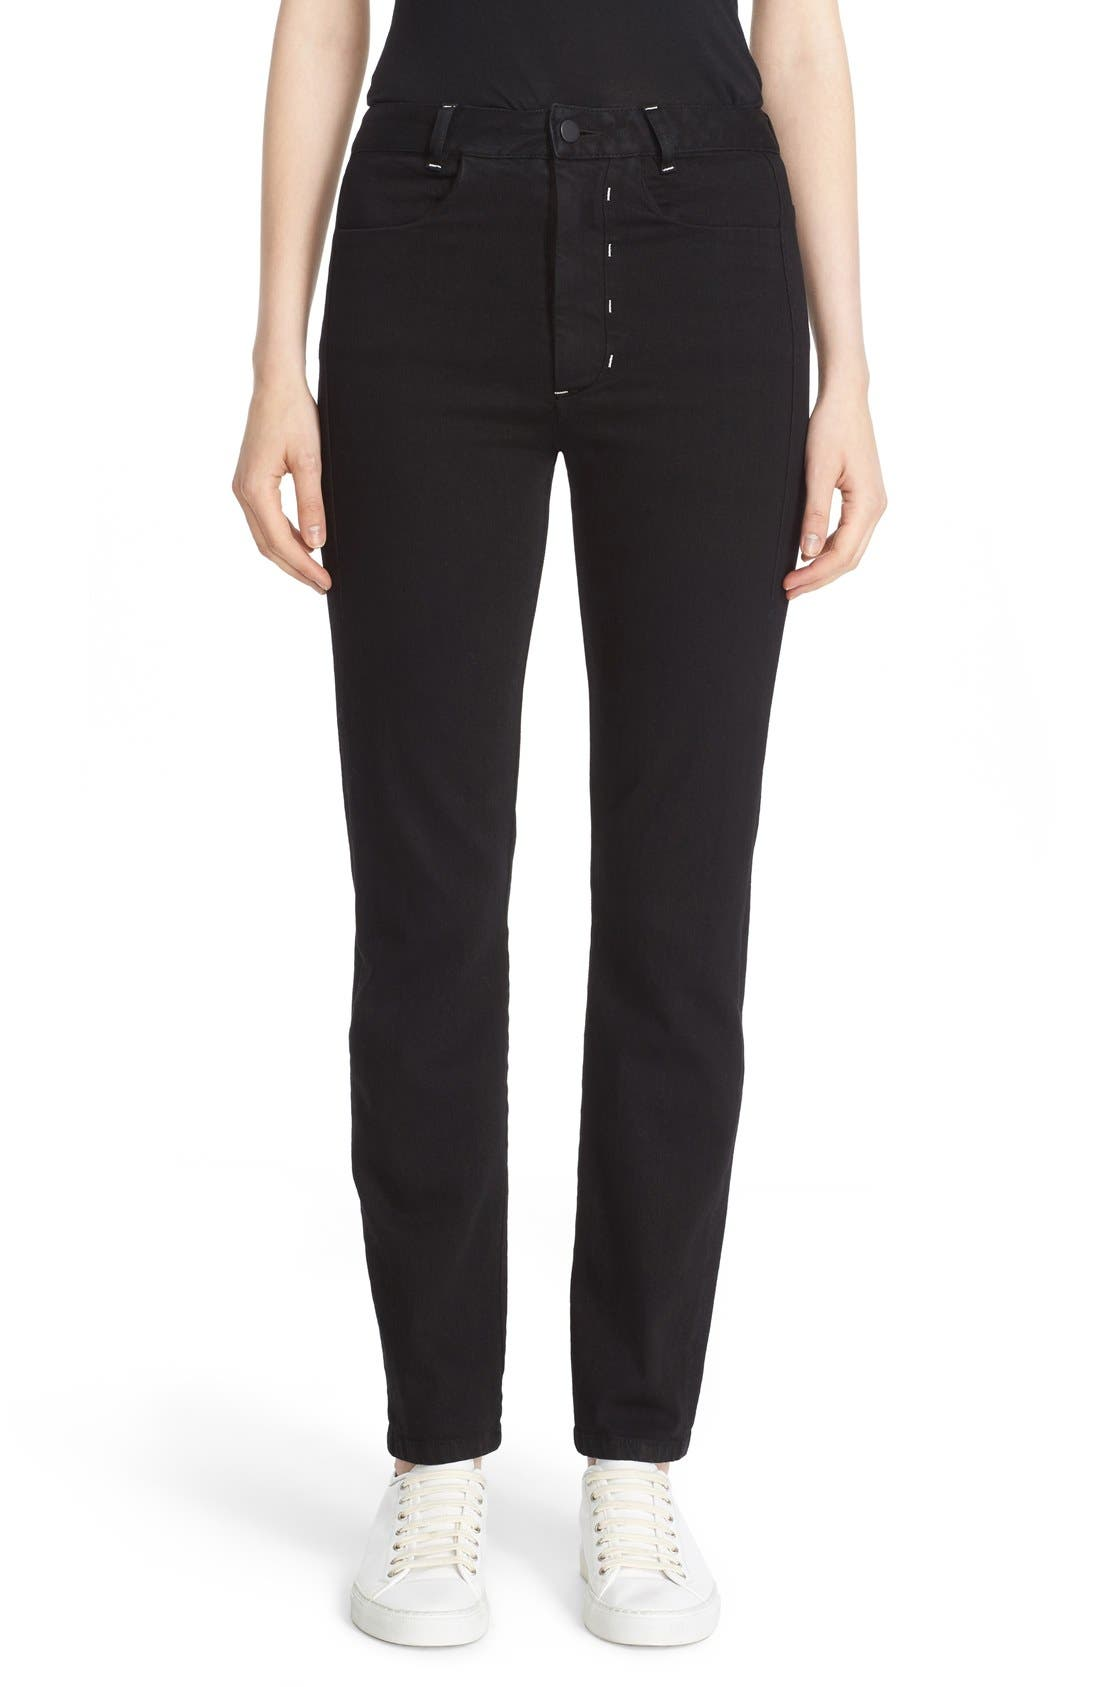 Stovepipe Stretch Jeans,                         Main,                         color, Black